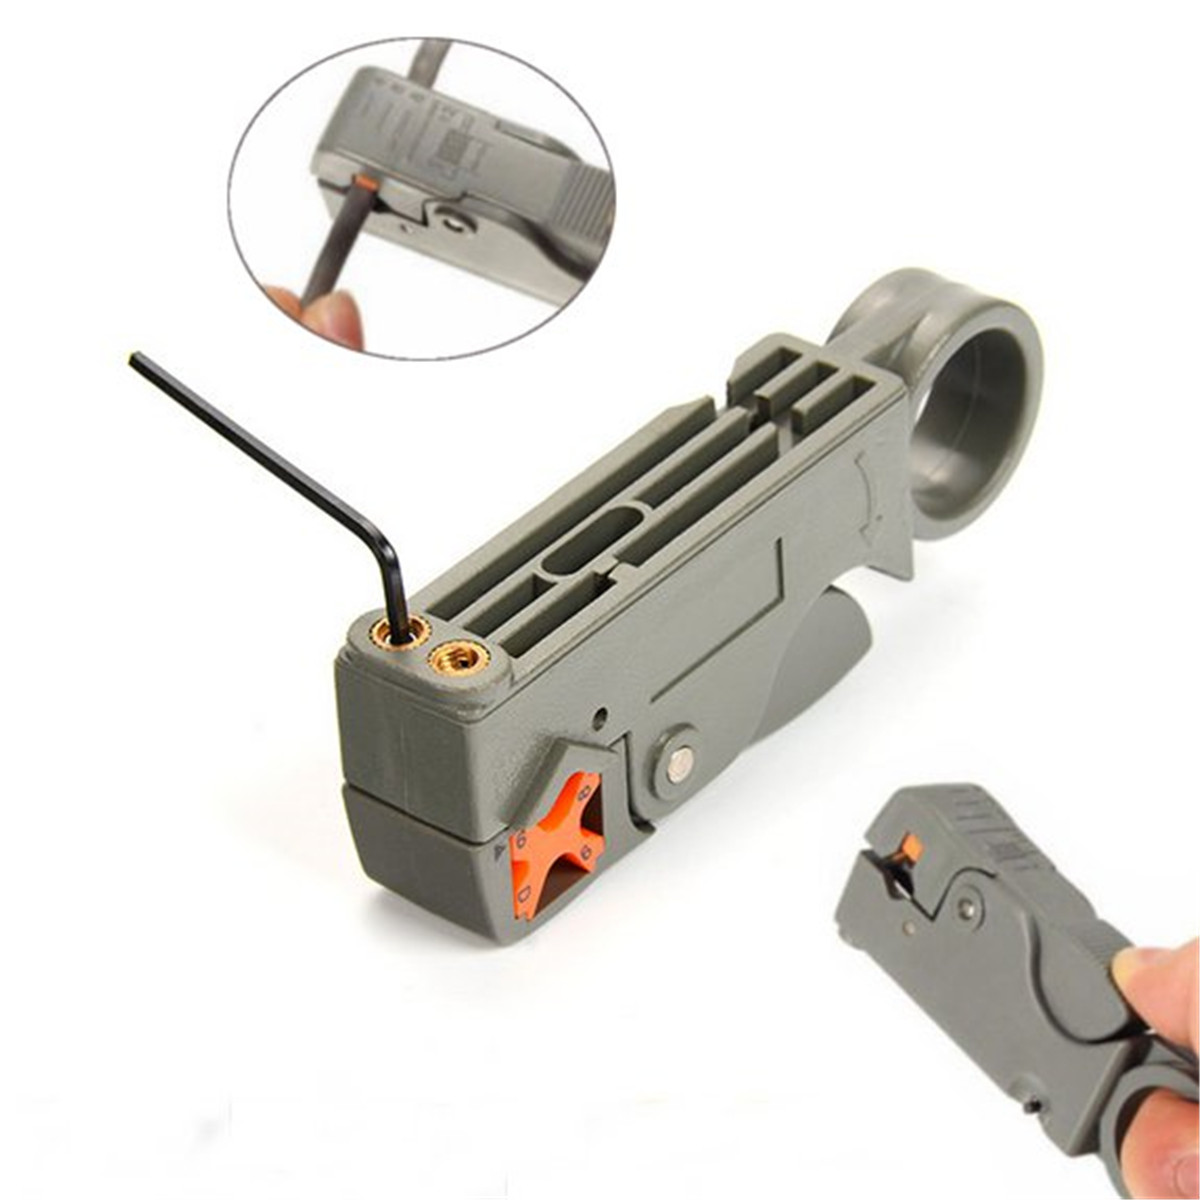 Automatic Wire Stripper Clamp Cutting Tool Cutter Crimping Cable Line Plier Adjustable